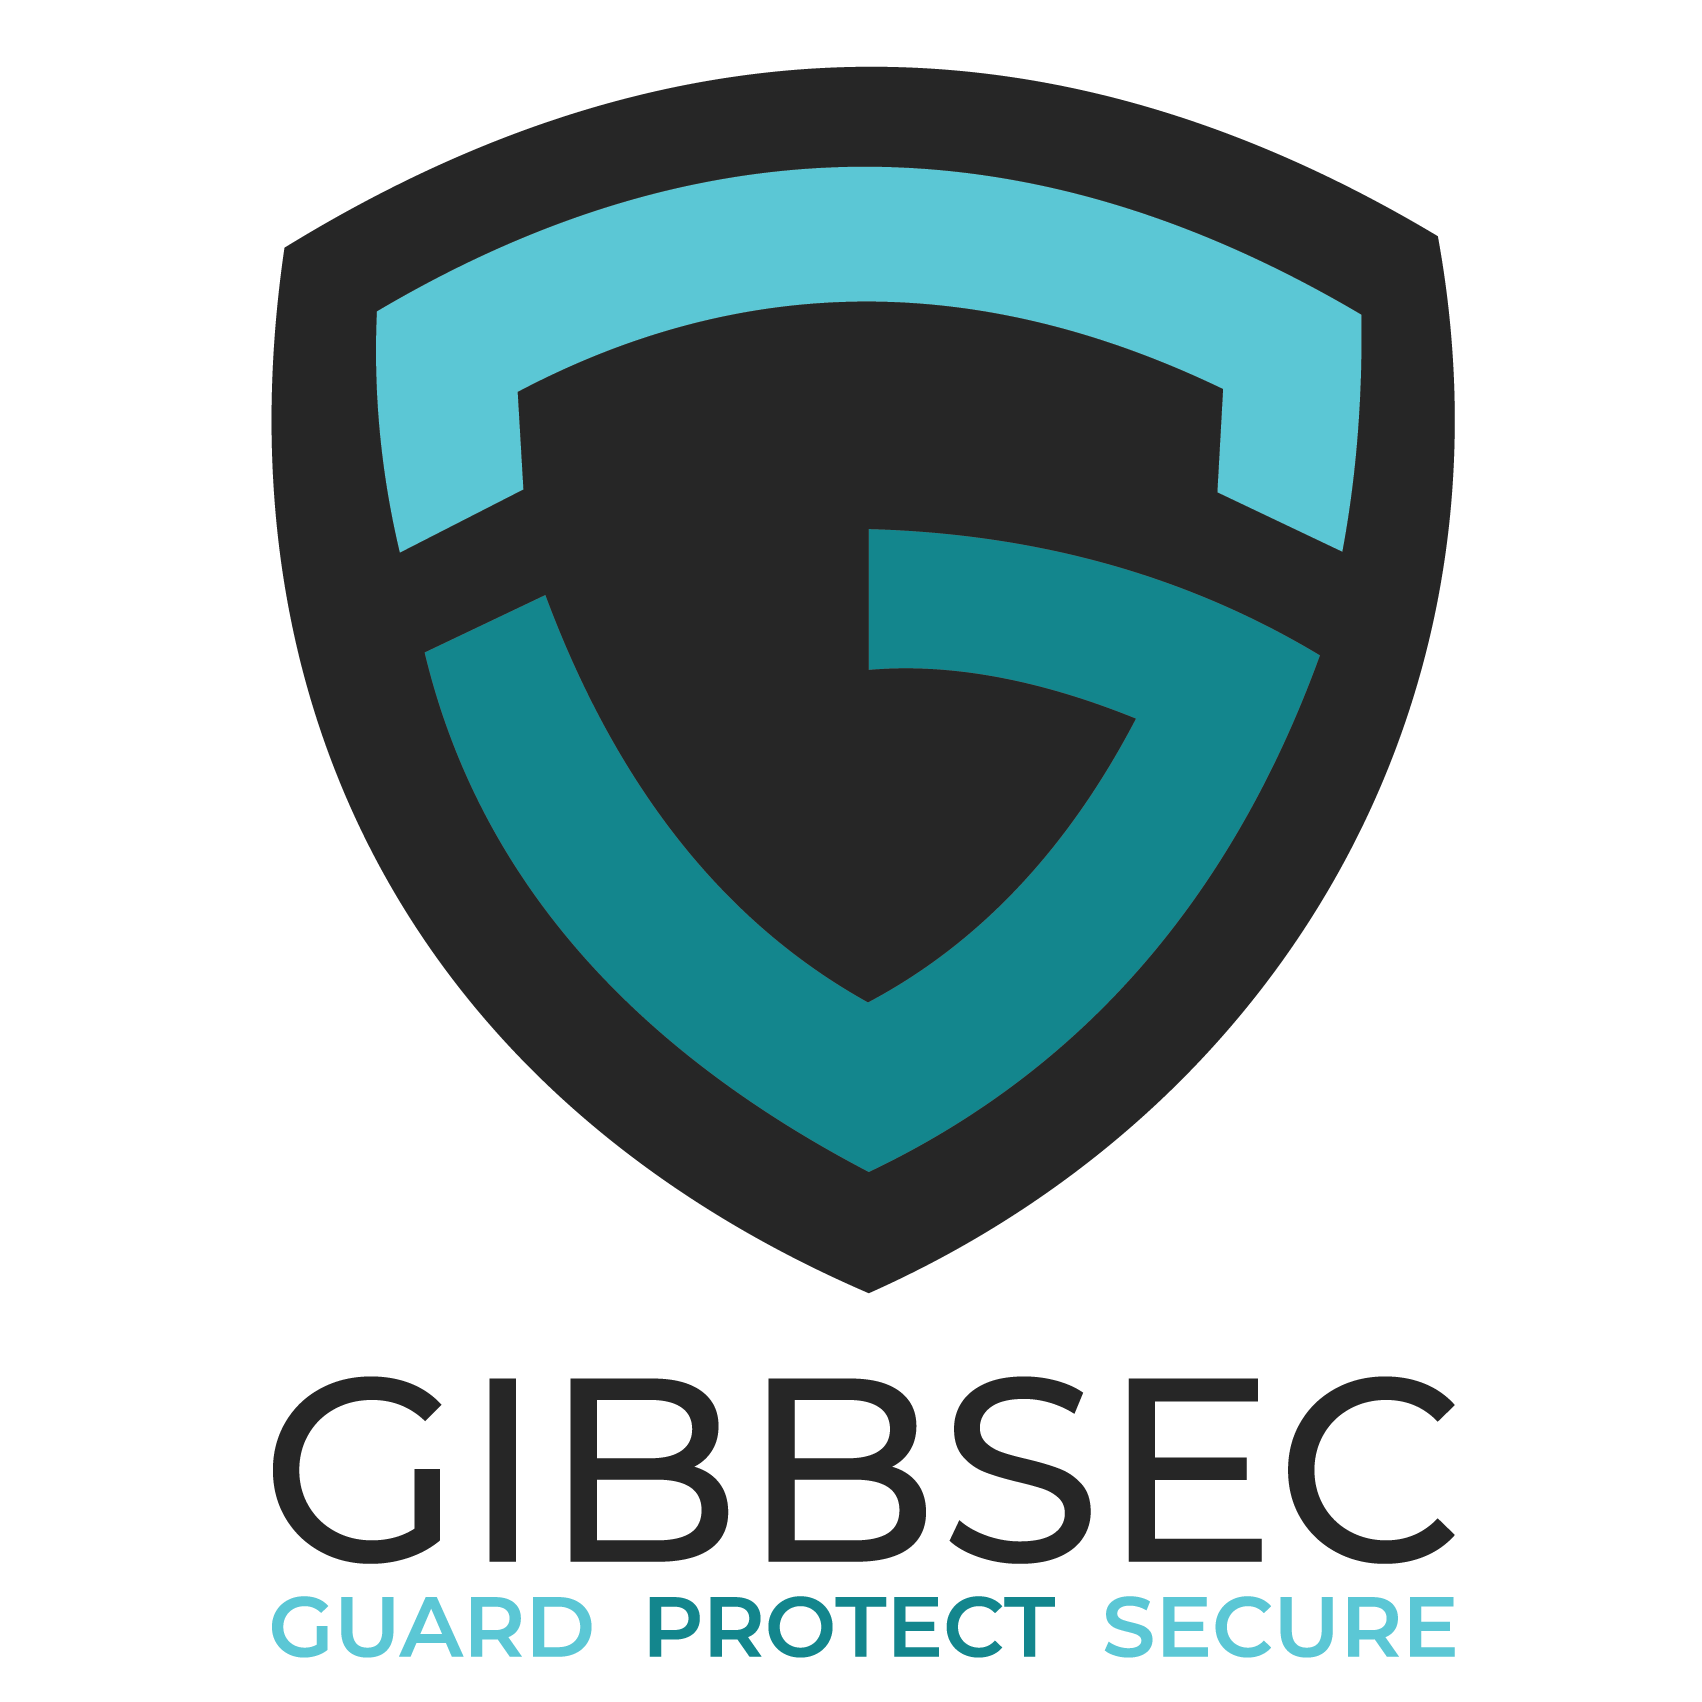 Gibbsec Security Services across Northern Ireland